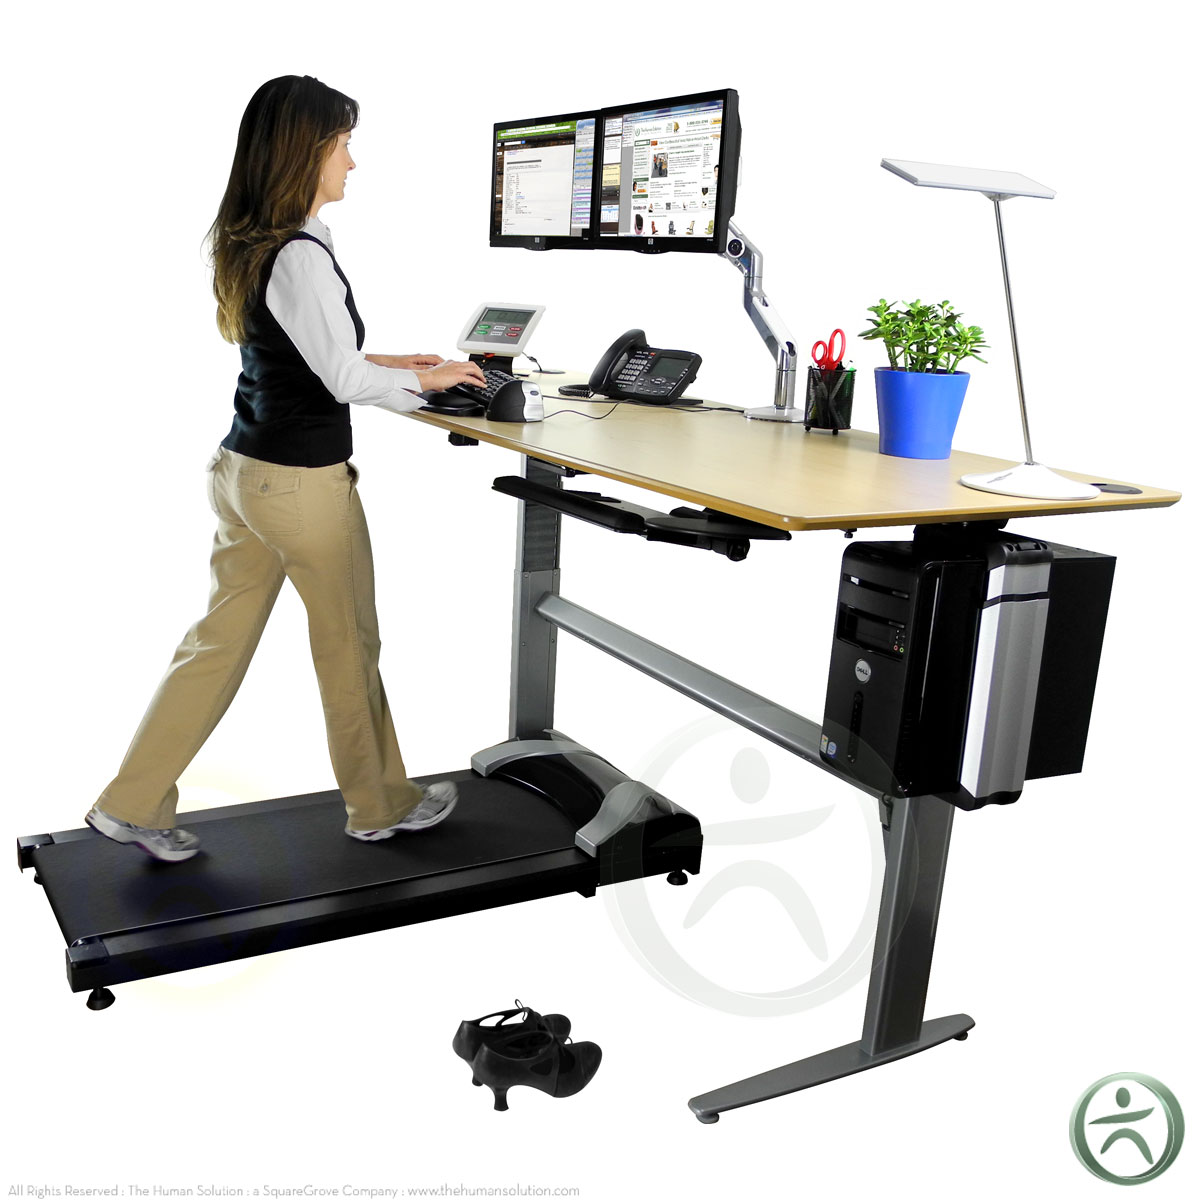 Treadmill For Desk At Work: The Tread - Treadmill By TreadDesk